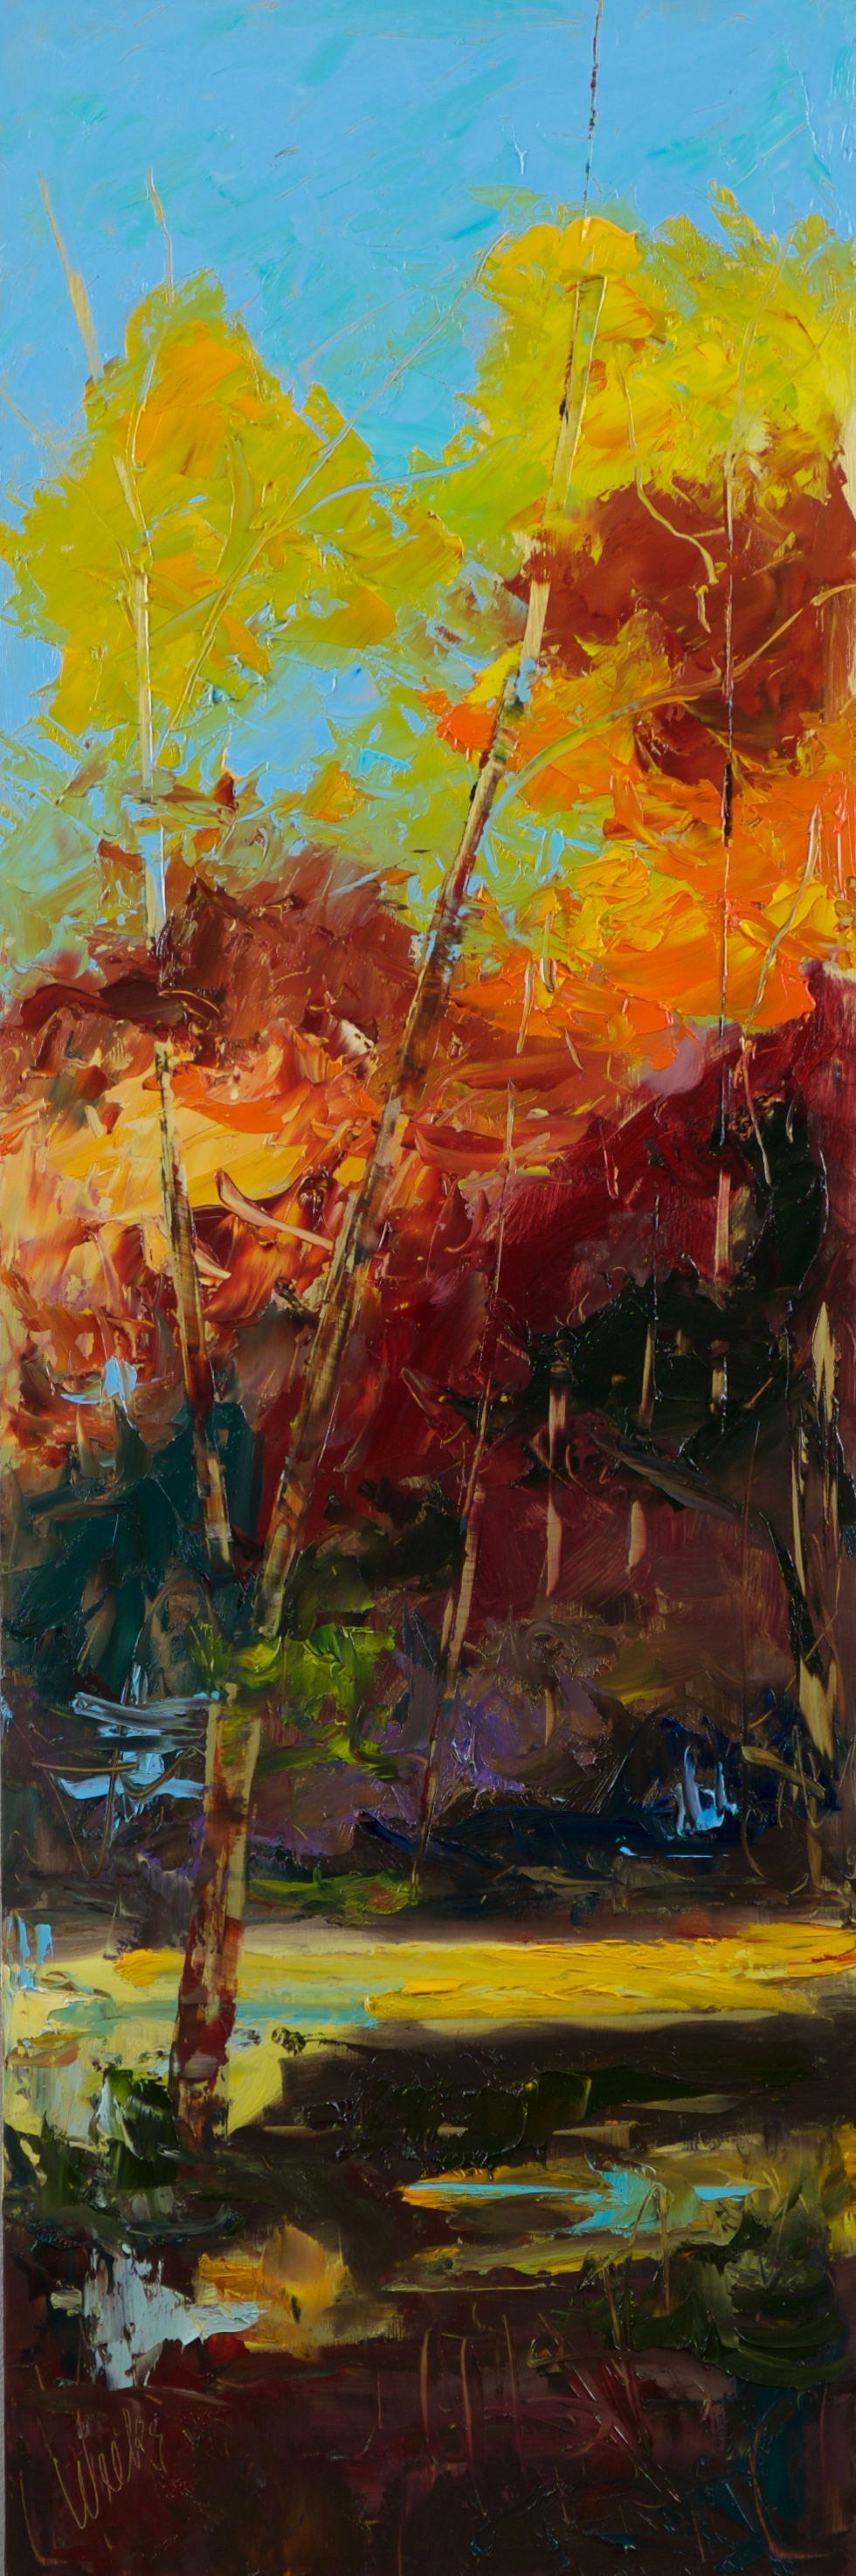 """""""Secrets of the Forest #1"""" - 36 x 12 inch"""